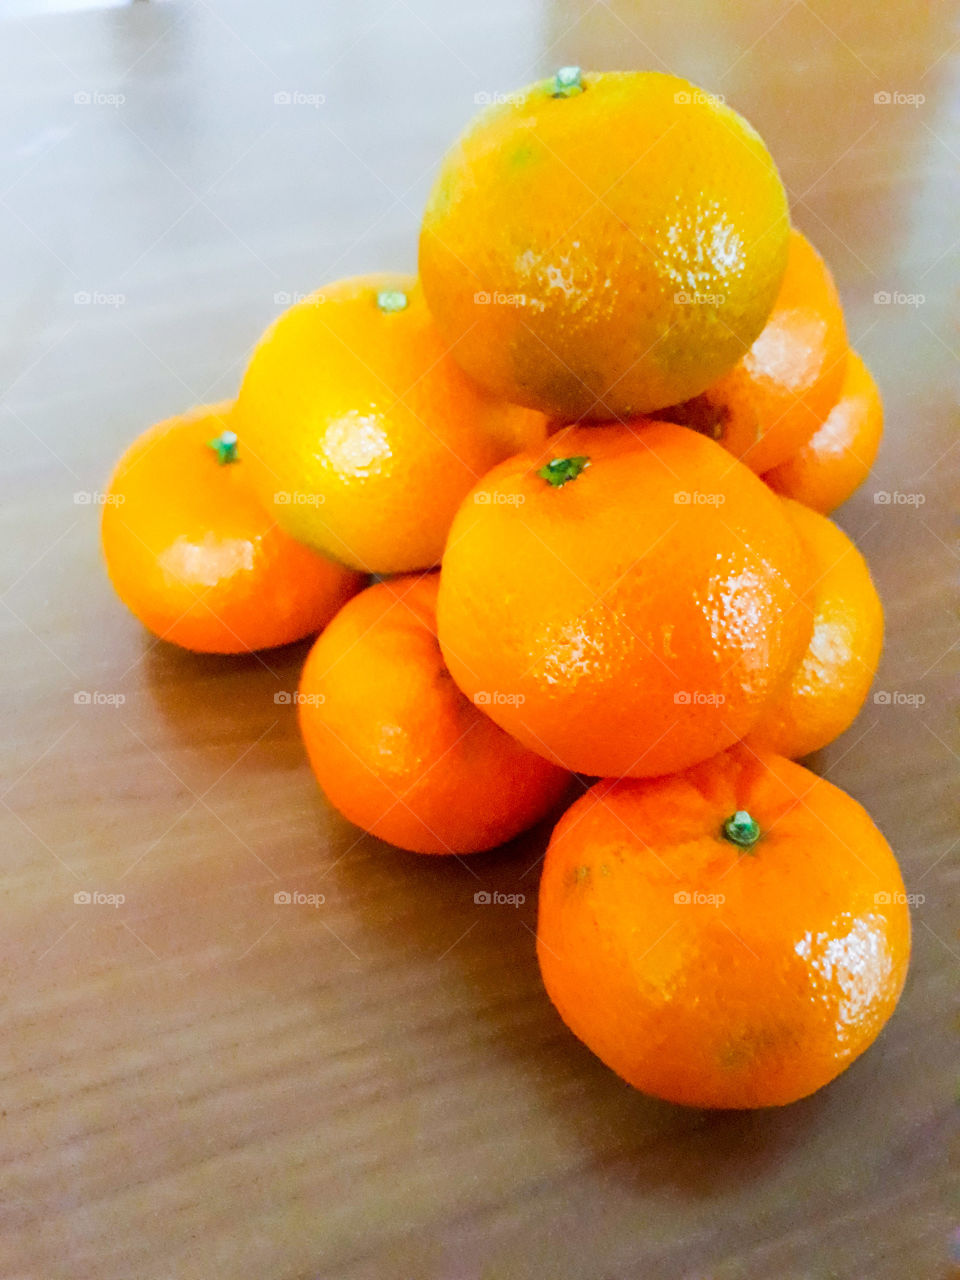 Pyramid of brilliant orange tangerines on a wooden background